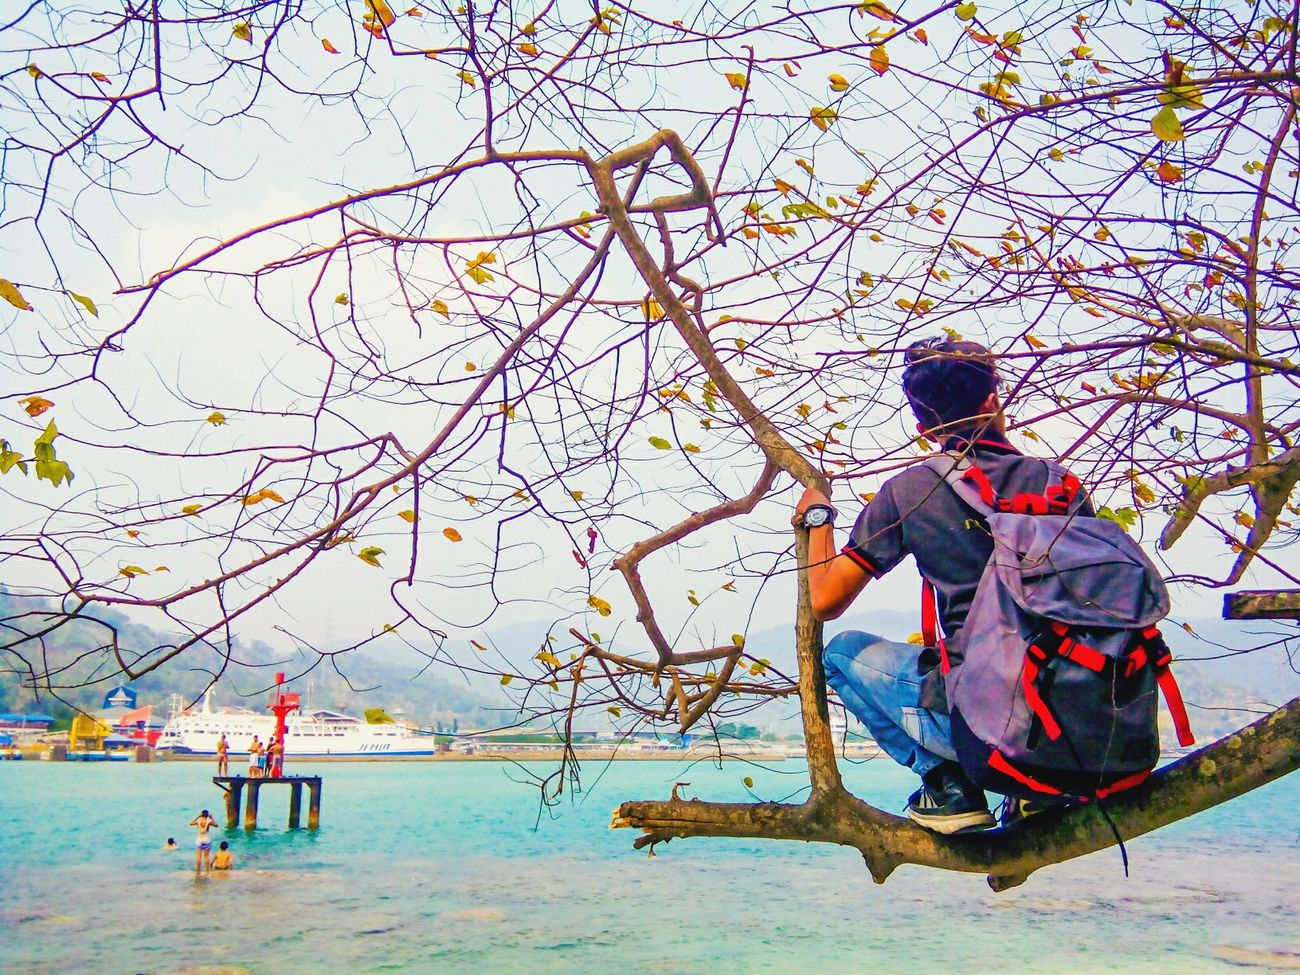 Beachphotography Traveling Enjoying Life Adventure PulauBesar